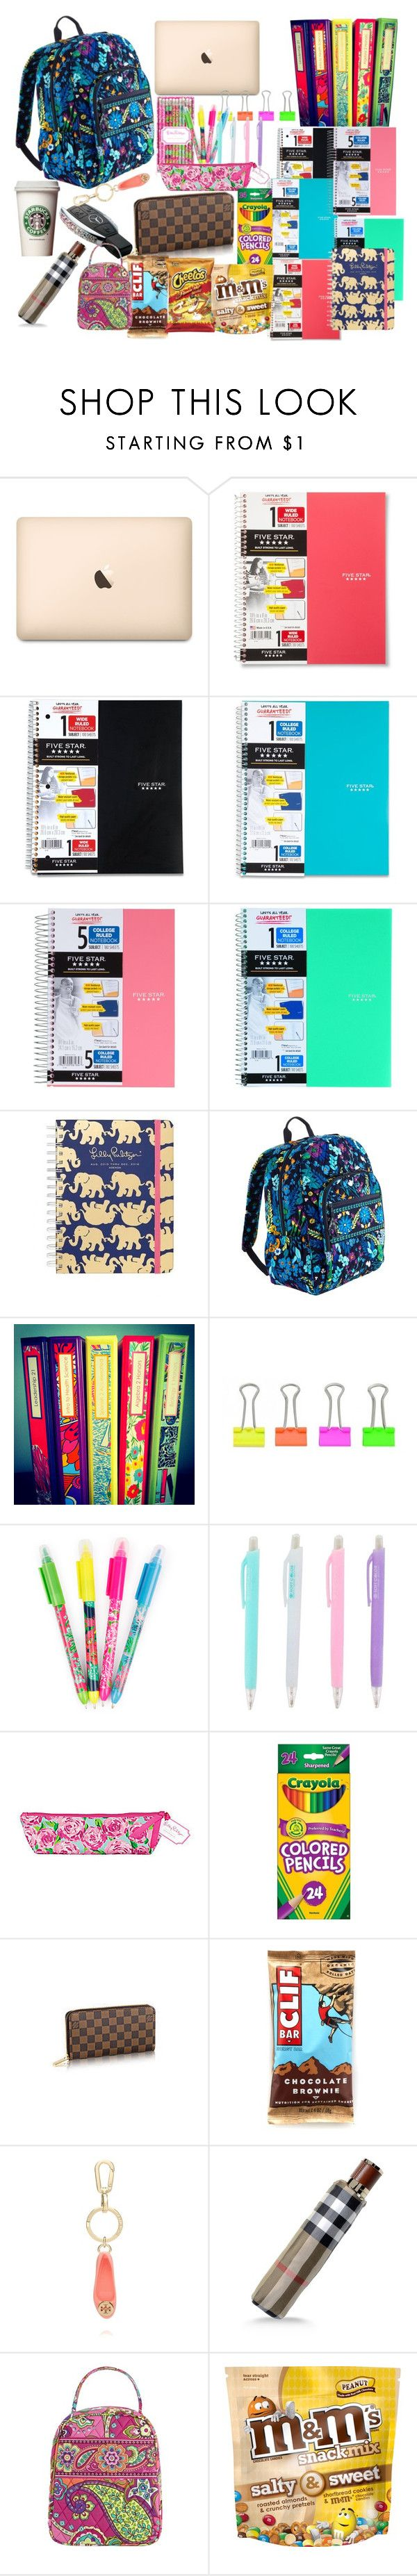 """""""What's in My Backpack"""" by preppy-pearlgirl ❤ liked on Polyvore featuring ACCO, Vera Bradley, Lilly Pulitzer, Tory Burch and Burberry"""